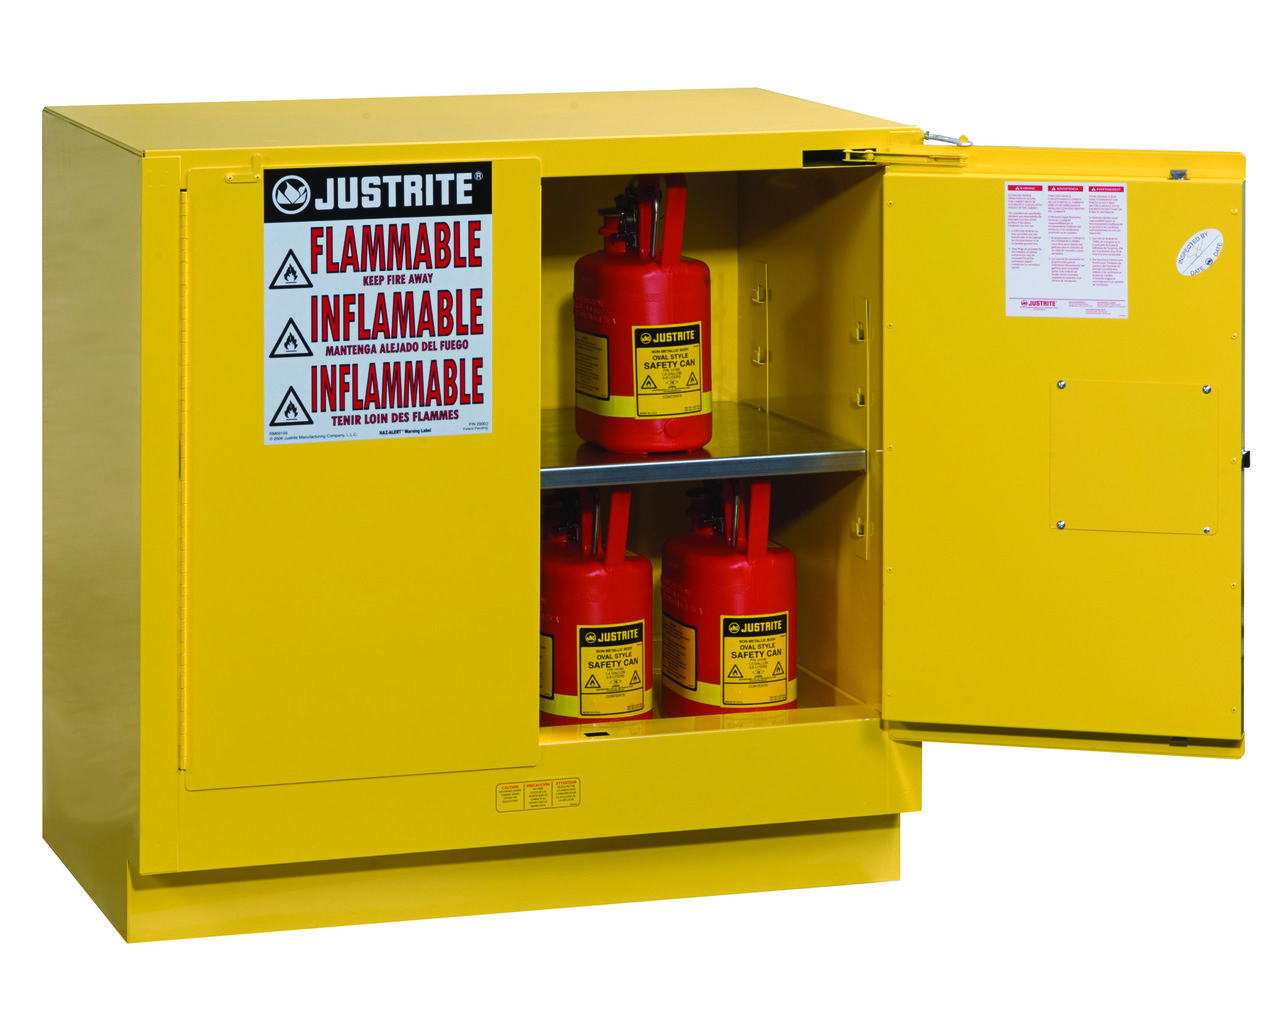 Justrite 892320 22 Gallon Undercounter Flammable Safety Cabinet Adjustable Shelving Locker Storage Basic Office Supplies